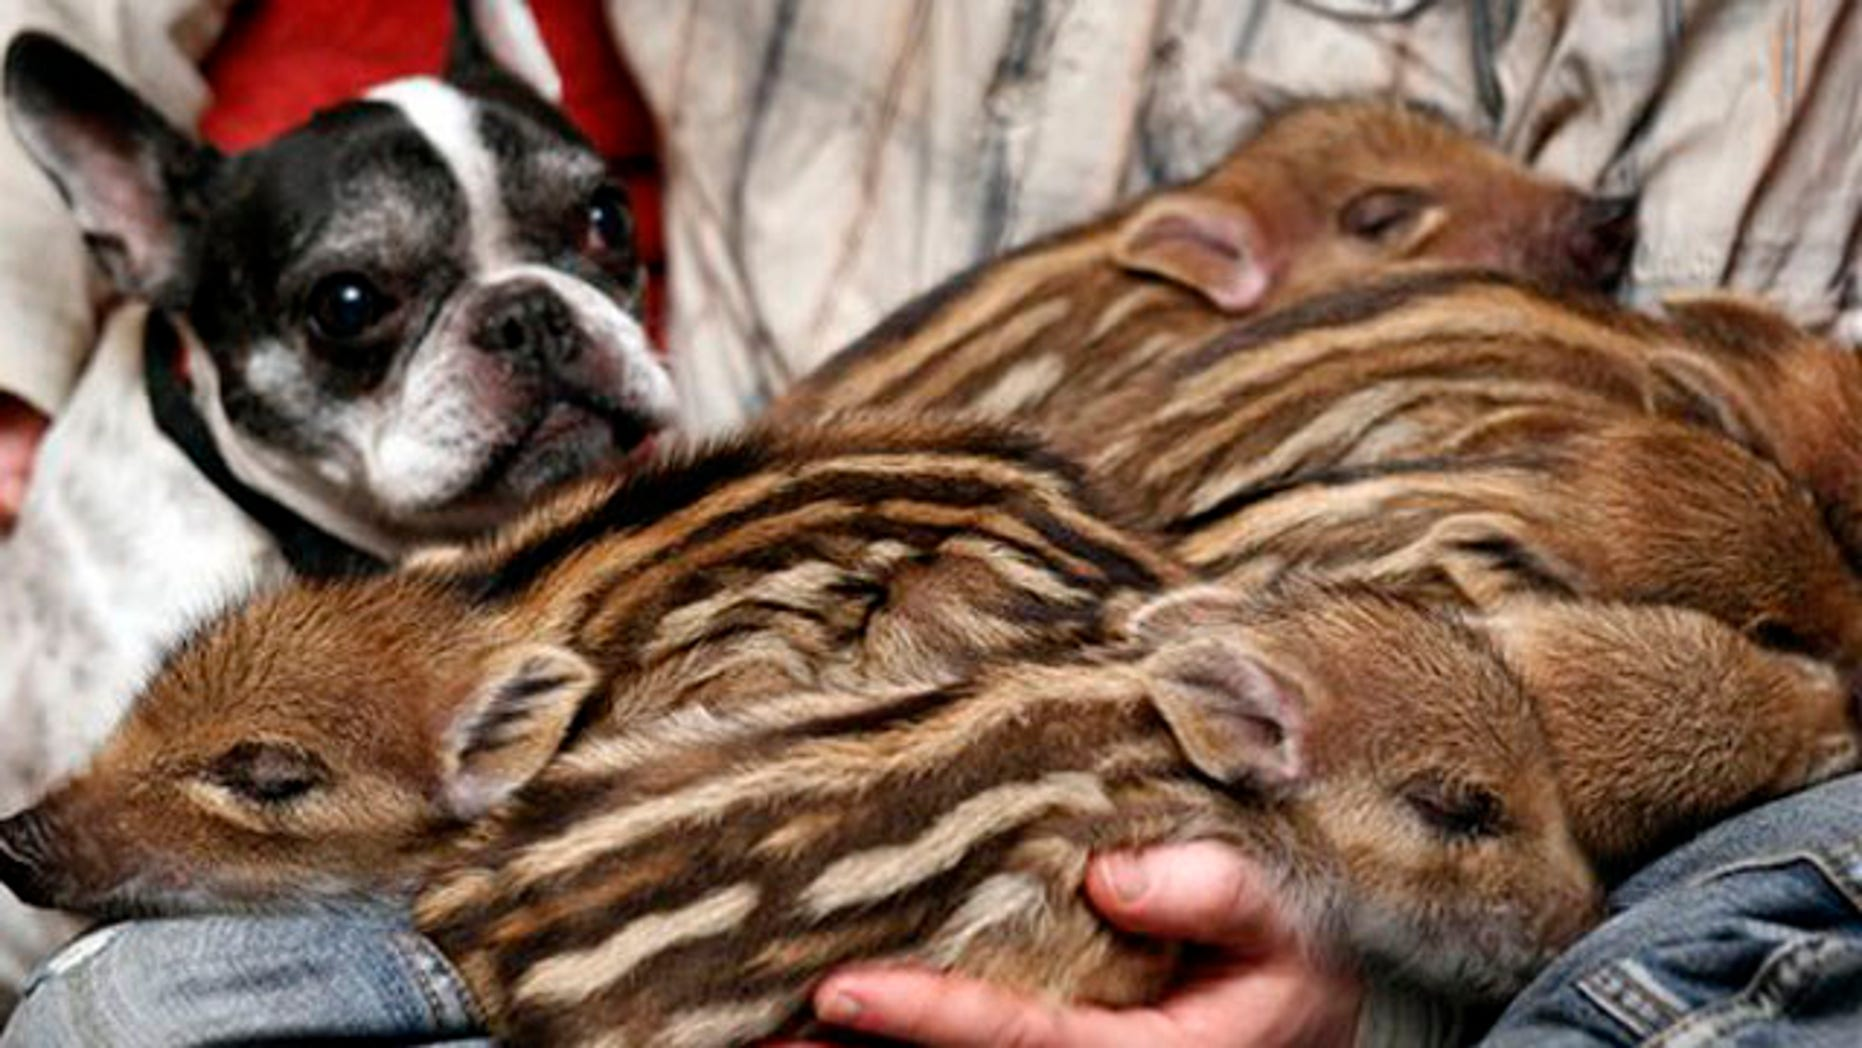 Feb. 15, 2012: French bulldog named Baby, left, attends the feeding of wild boar piglets at the Lehnitz animal sanctuary outside Berlin, Germany.